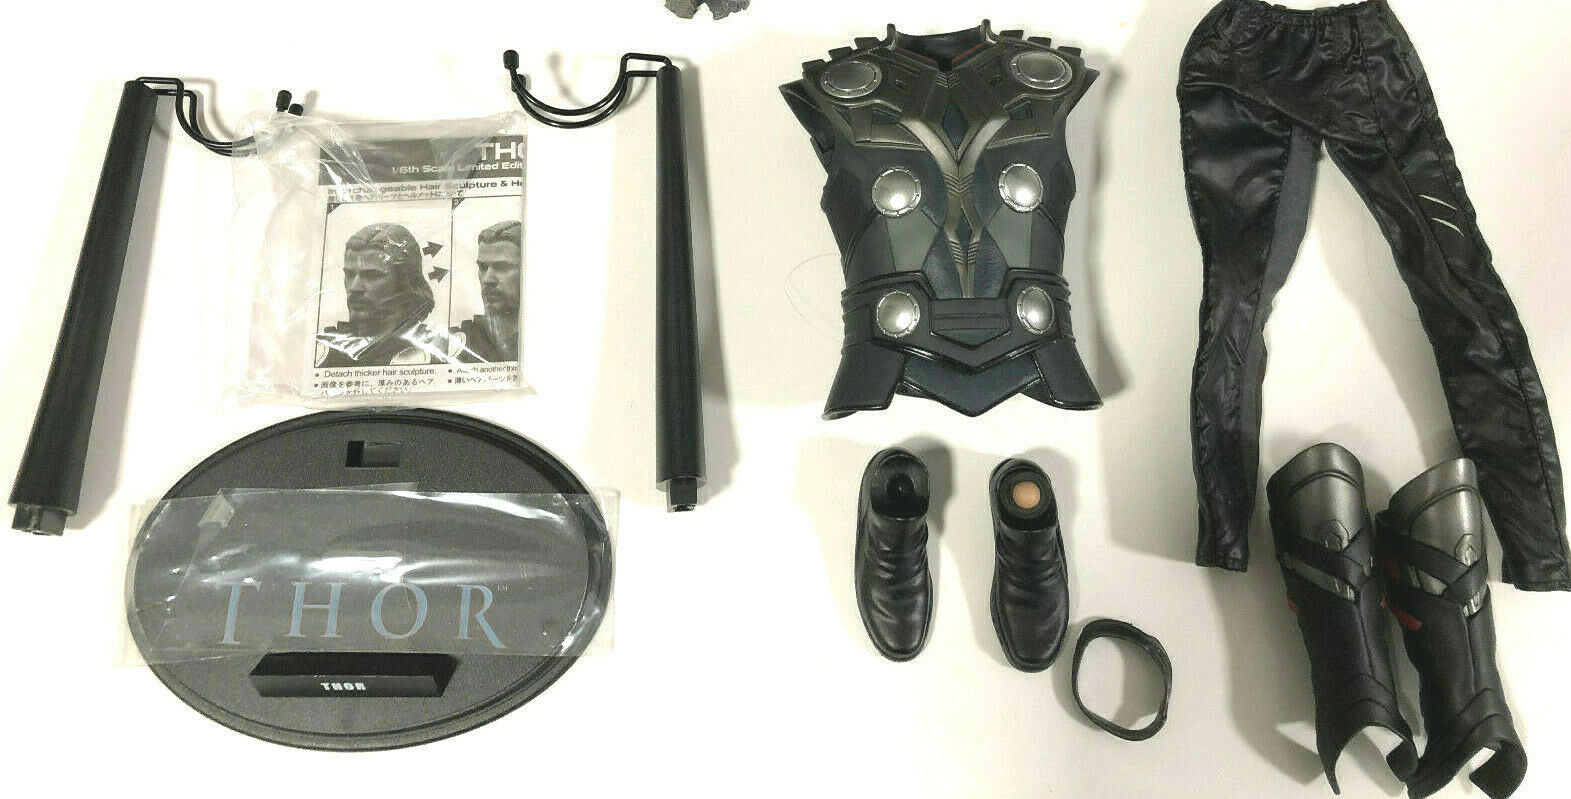 SALE    HOT TOYS THOR ARMOR SUIT + BODY SET - USED - 1 6 12